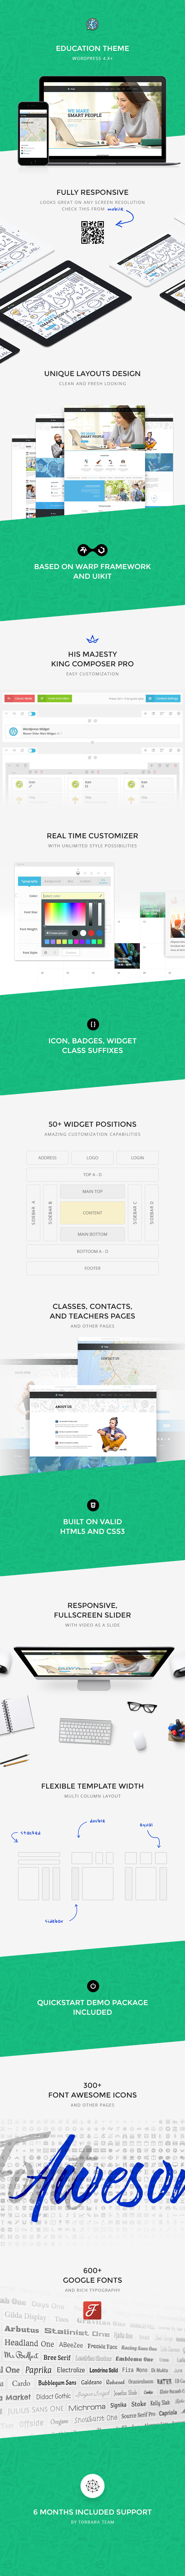 Ology — Education | Courses | Classes for Primary, Secondary & High School Education WordPress Theme - 3